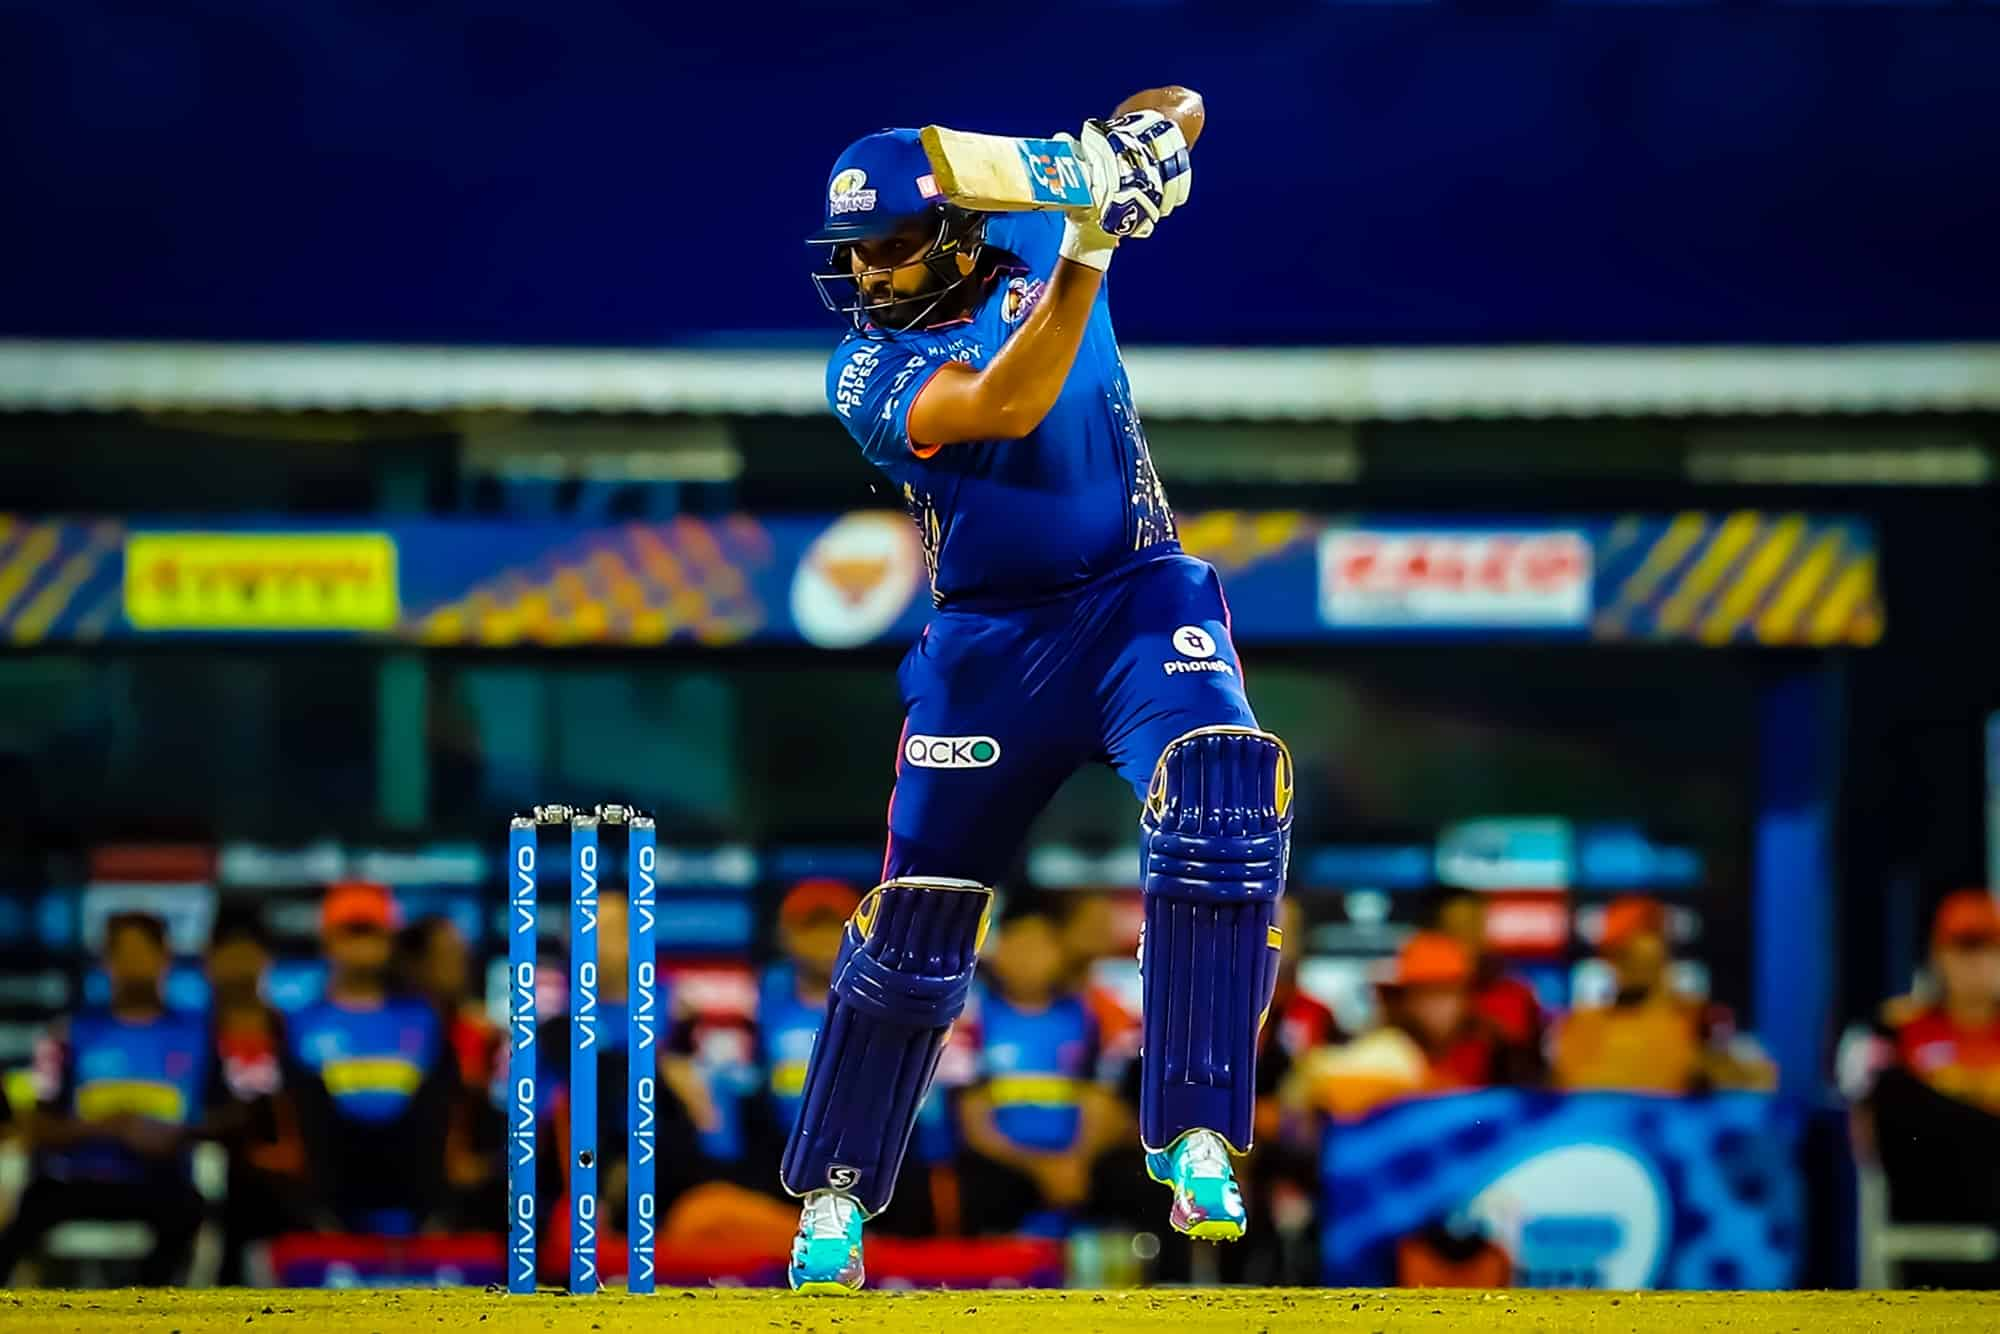 MI vs SRH: Rohit Sharma Surpasses MS Dhoni To Claim Most Sixes In IPL Among Indians